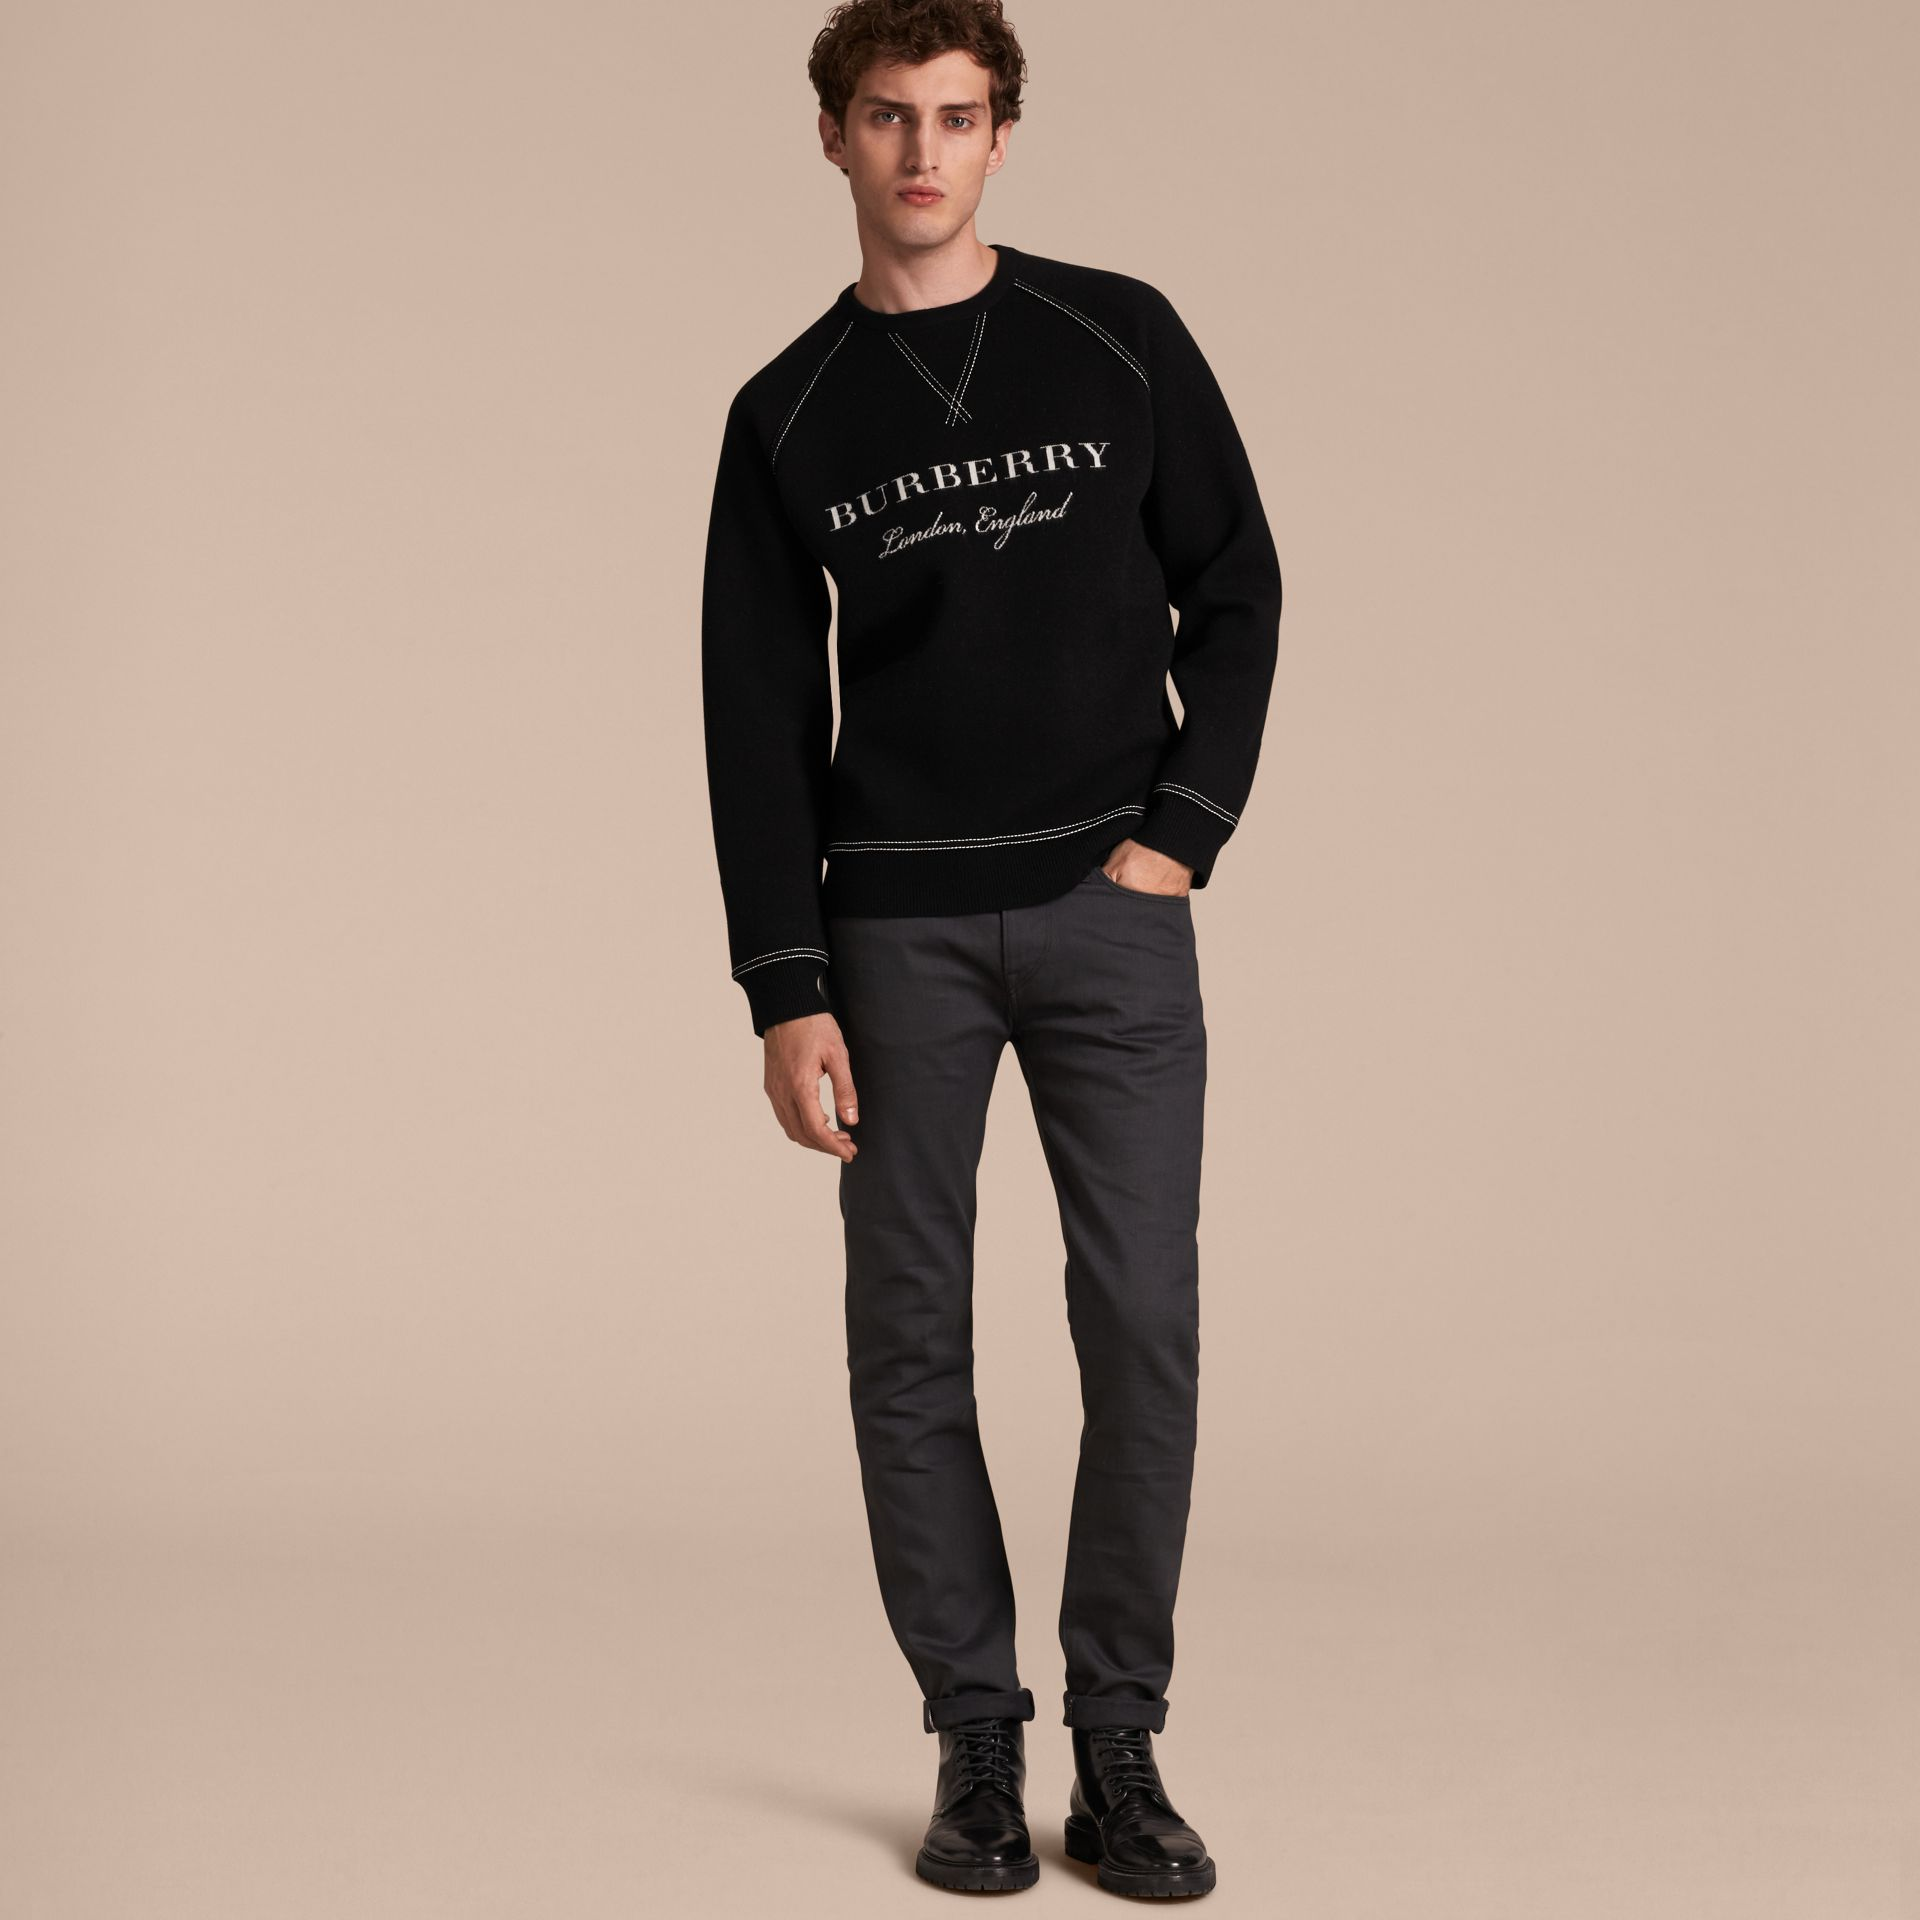 Topstitch Detail Wool Cashmere Blend Sweatshirt Black - gallery image 6